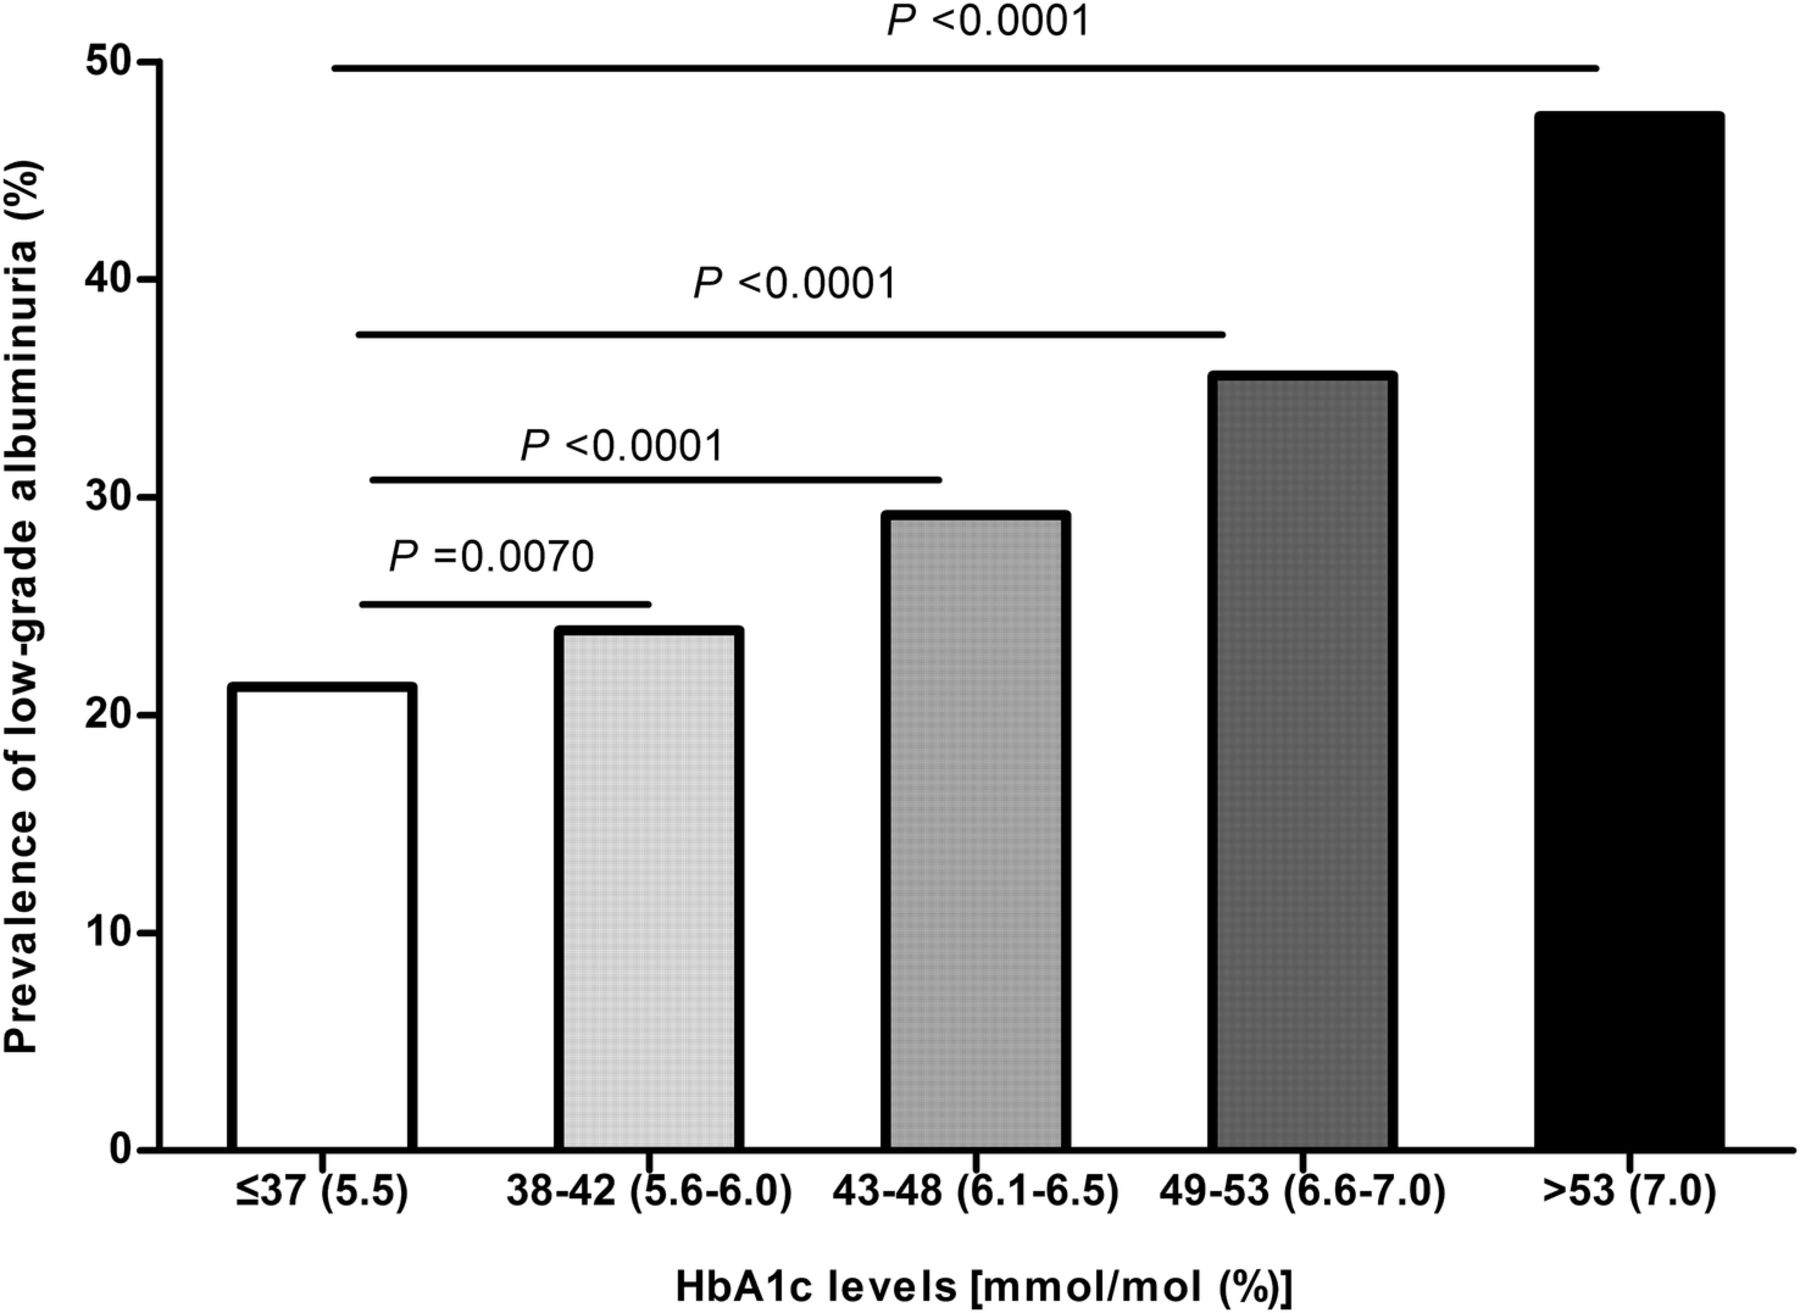 glycated haemoglobin a1c is associated with low grade albuminuria in